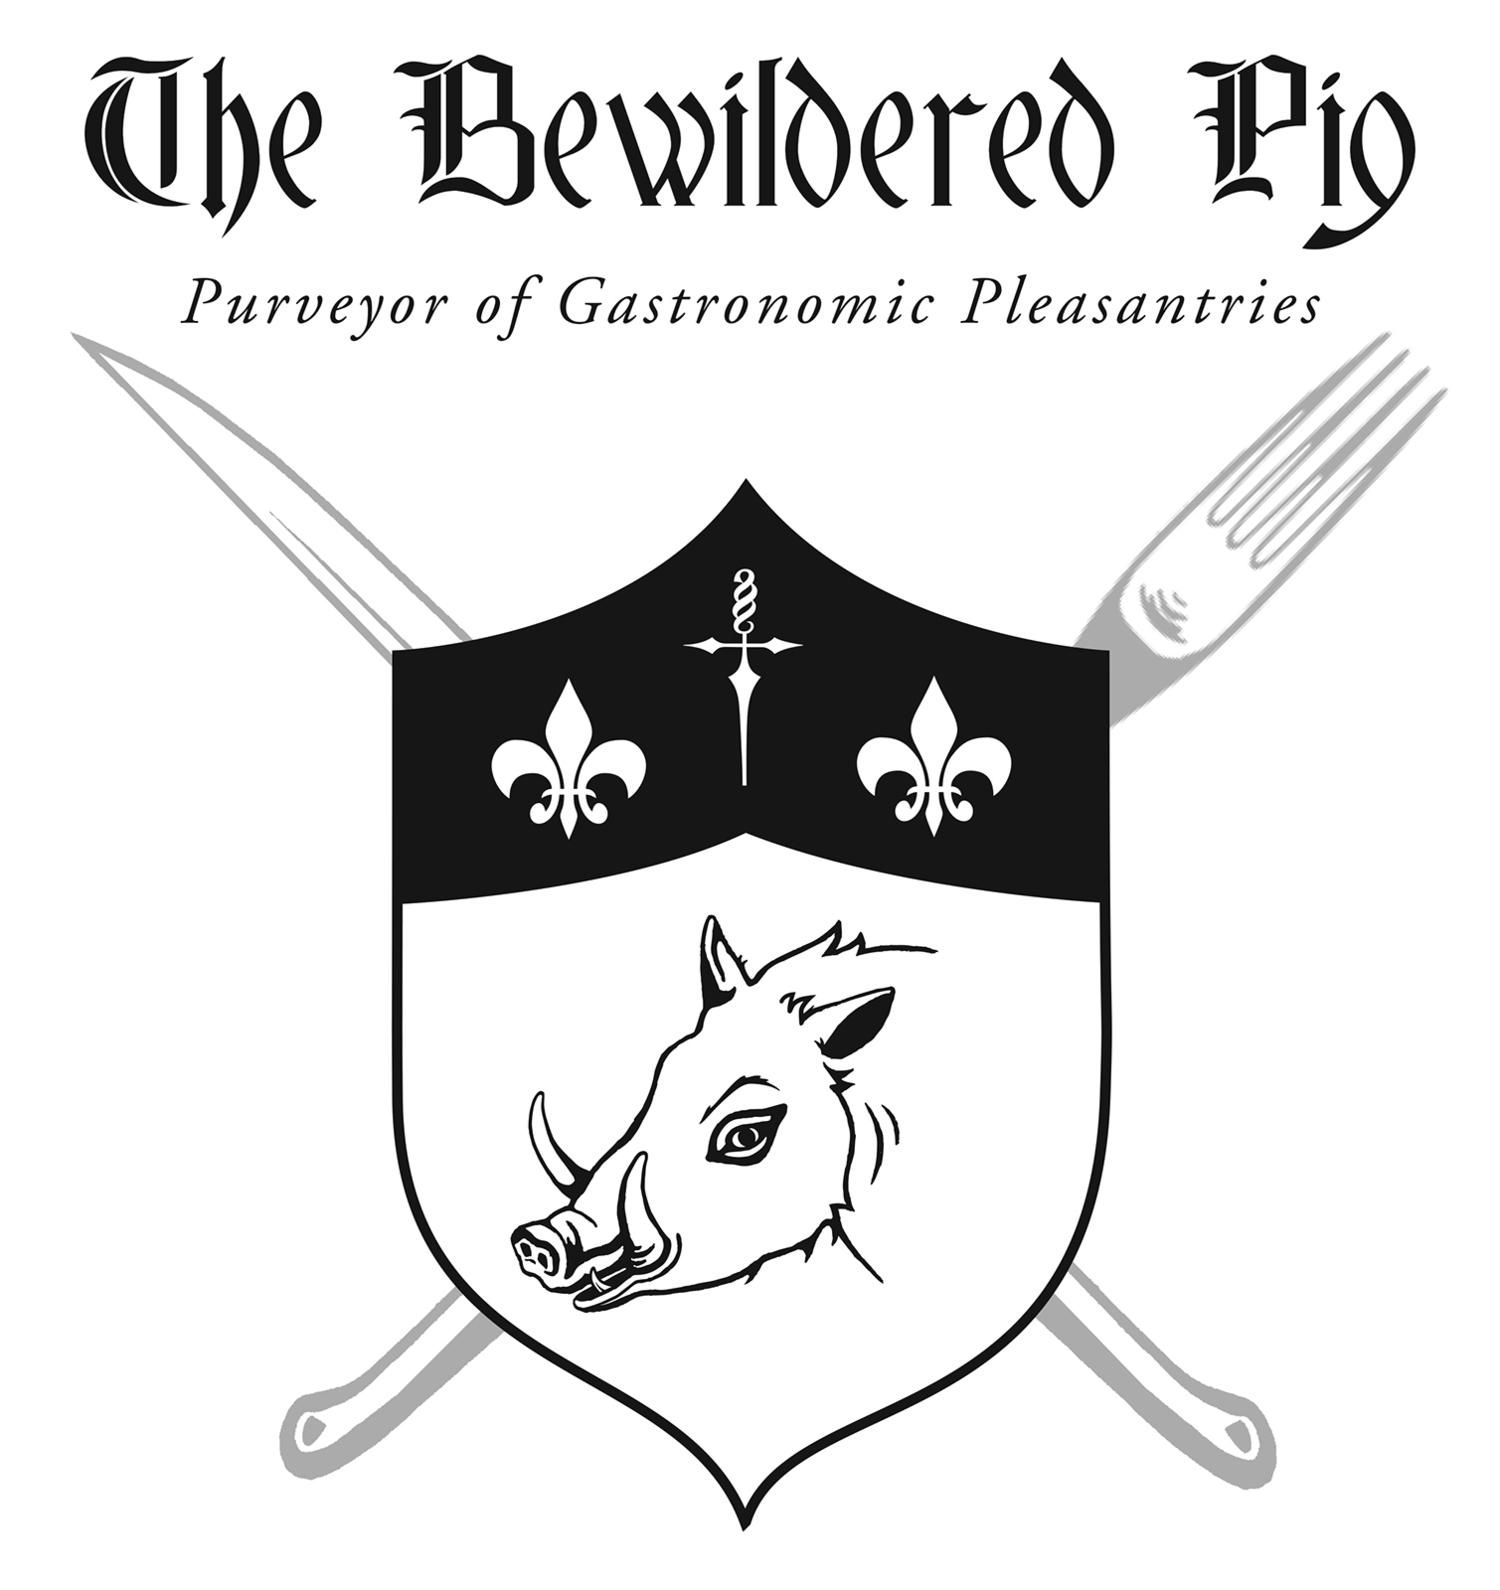 The Bewildered Pig